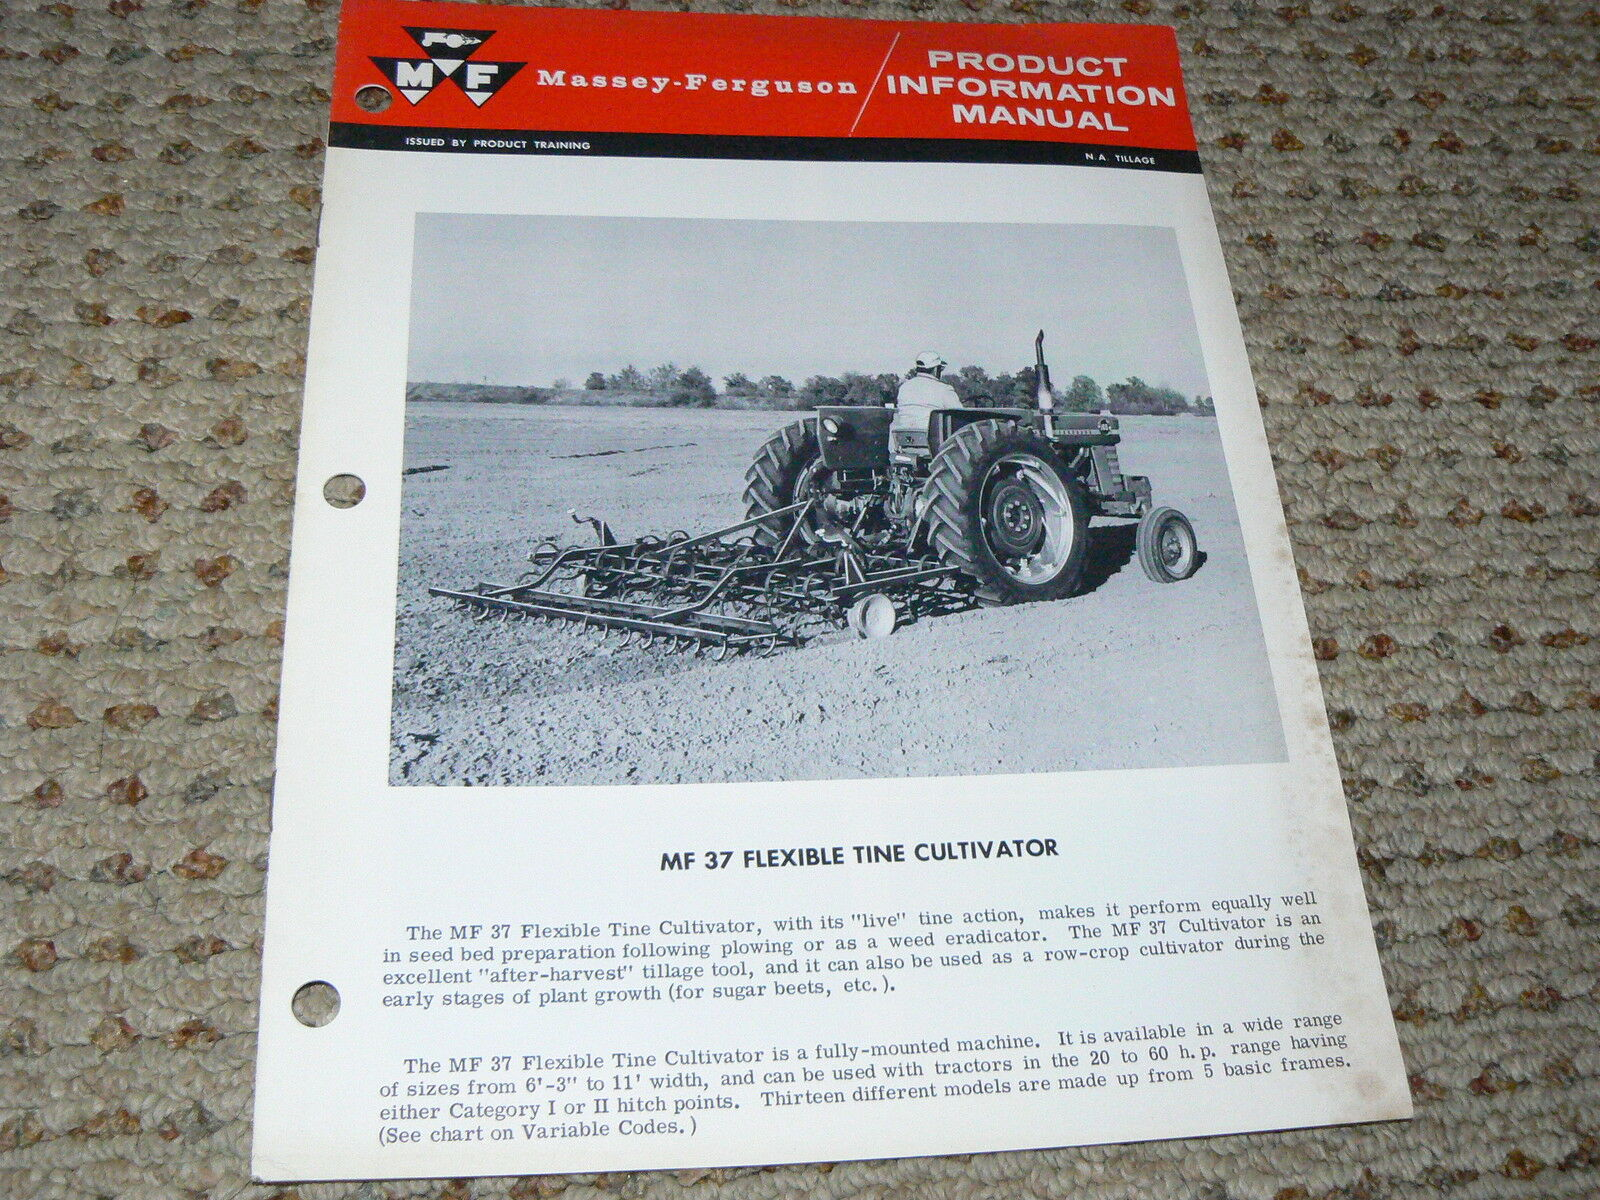 Massey Ferguson 37 Flexible Tine Cultivator Product Information Manual 1 of  1Only 2 available ...